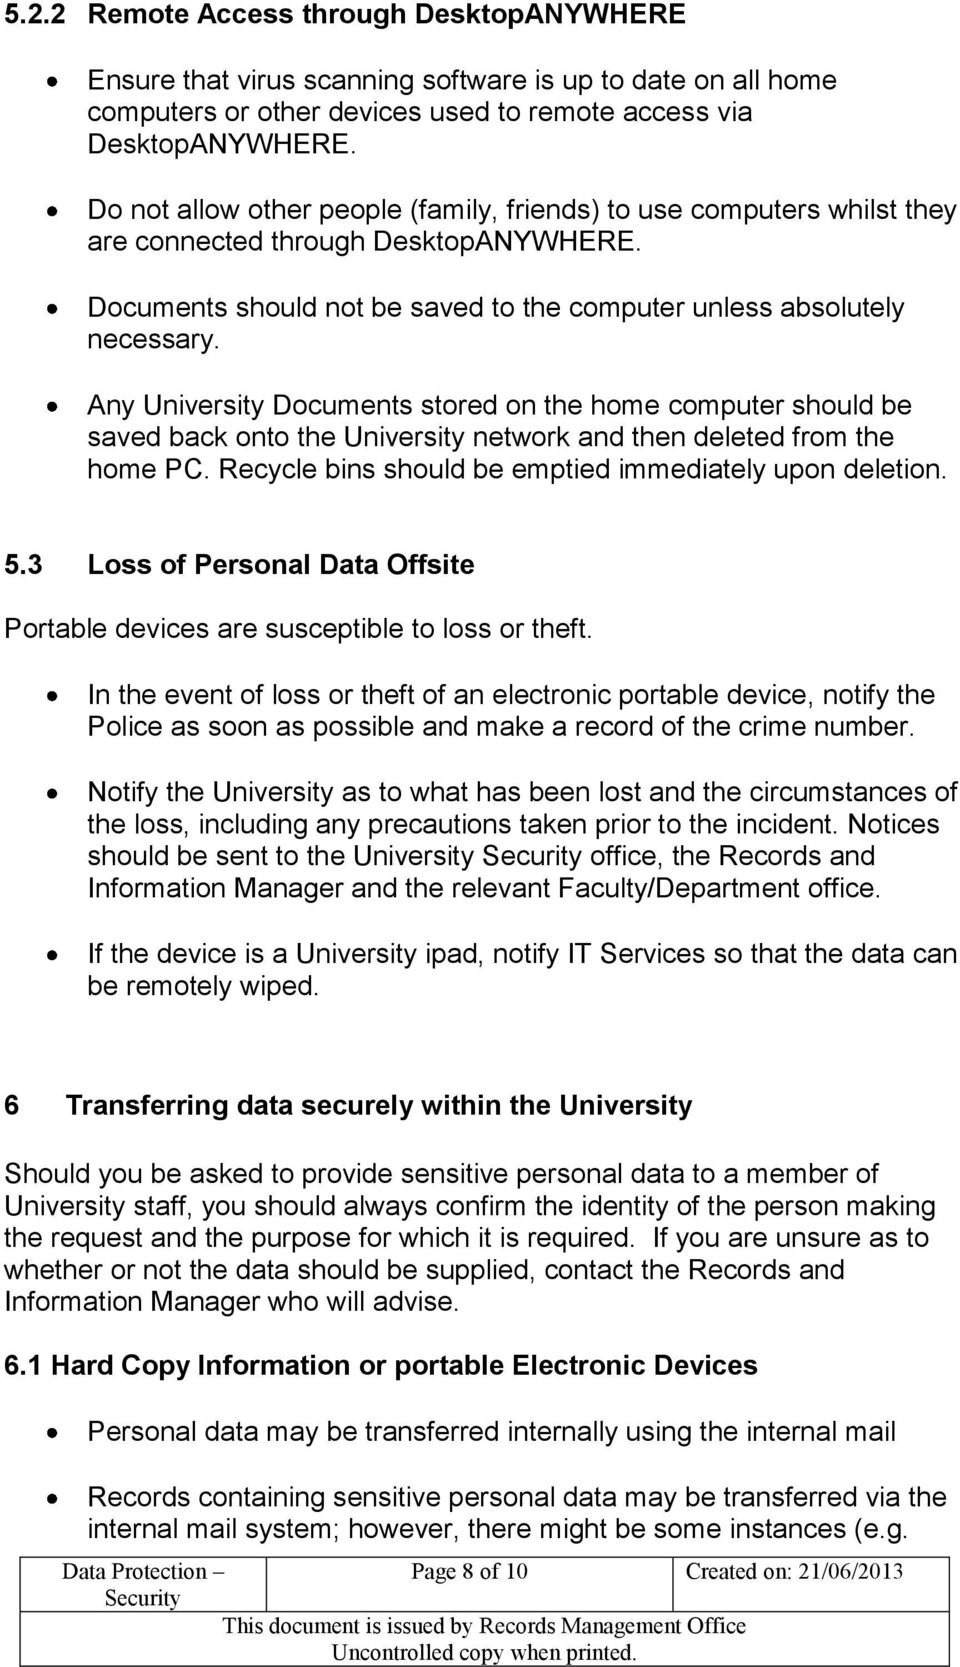 Any University Documents stored on the home computer should be saved back onto the University network and then deleted from the home PC. Recycle bins should be emptied immediately upon deletion. 5.